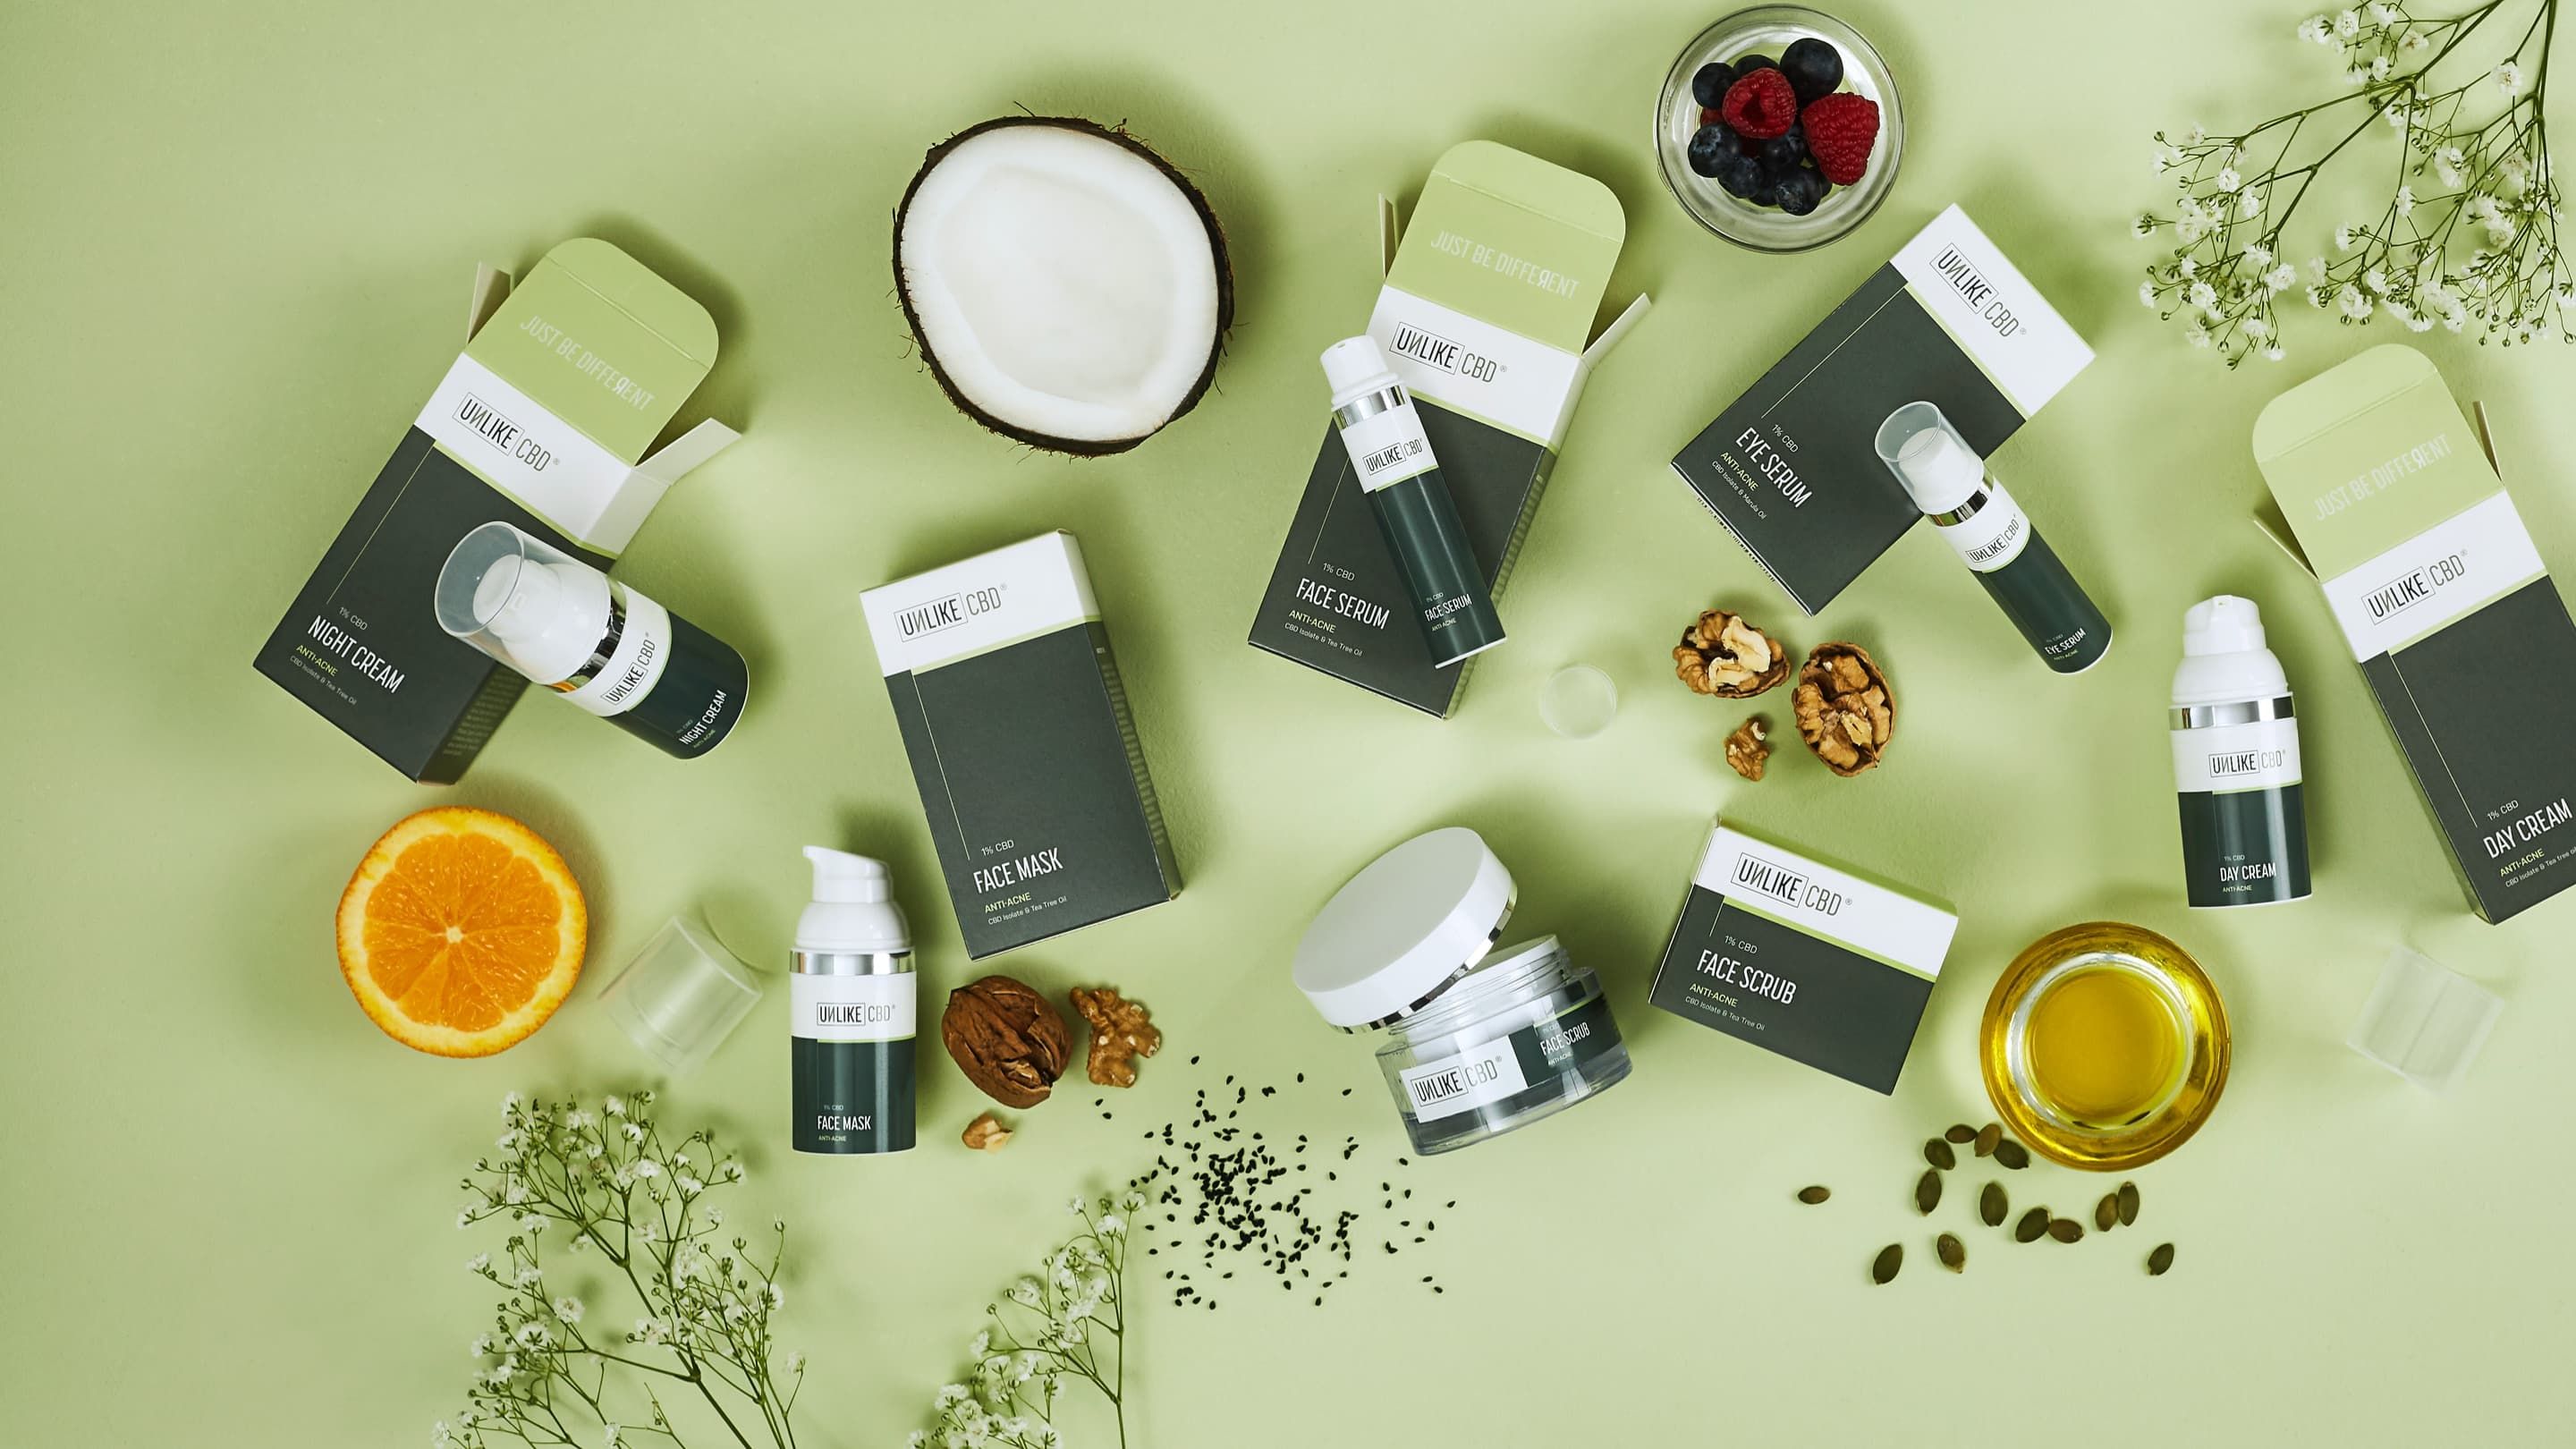 Multiple Unlike CBD products as a flat lay including fruit and berries